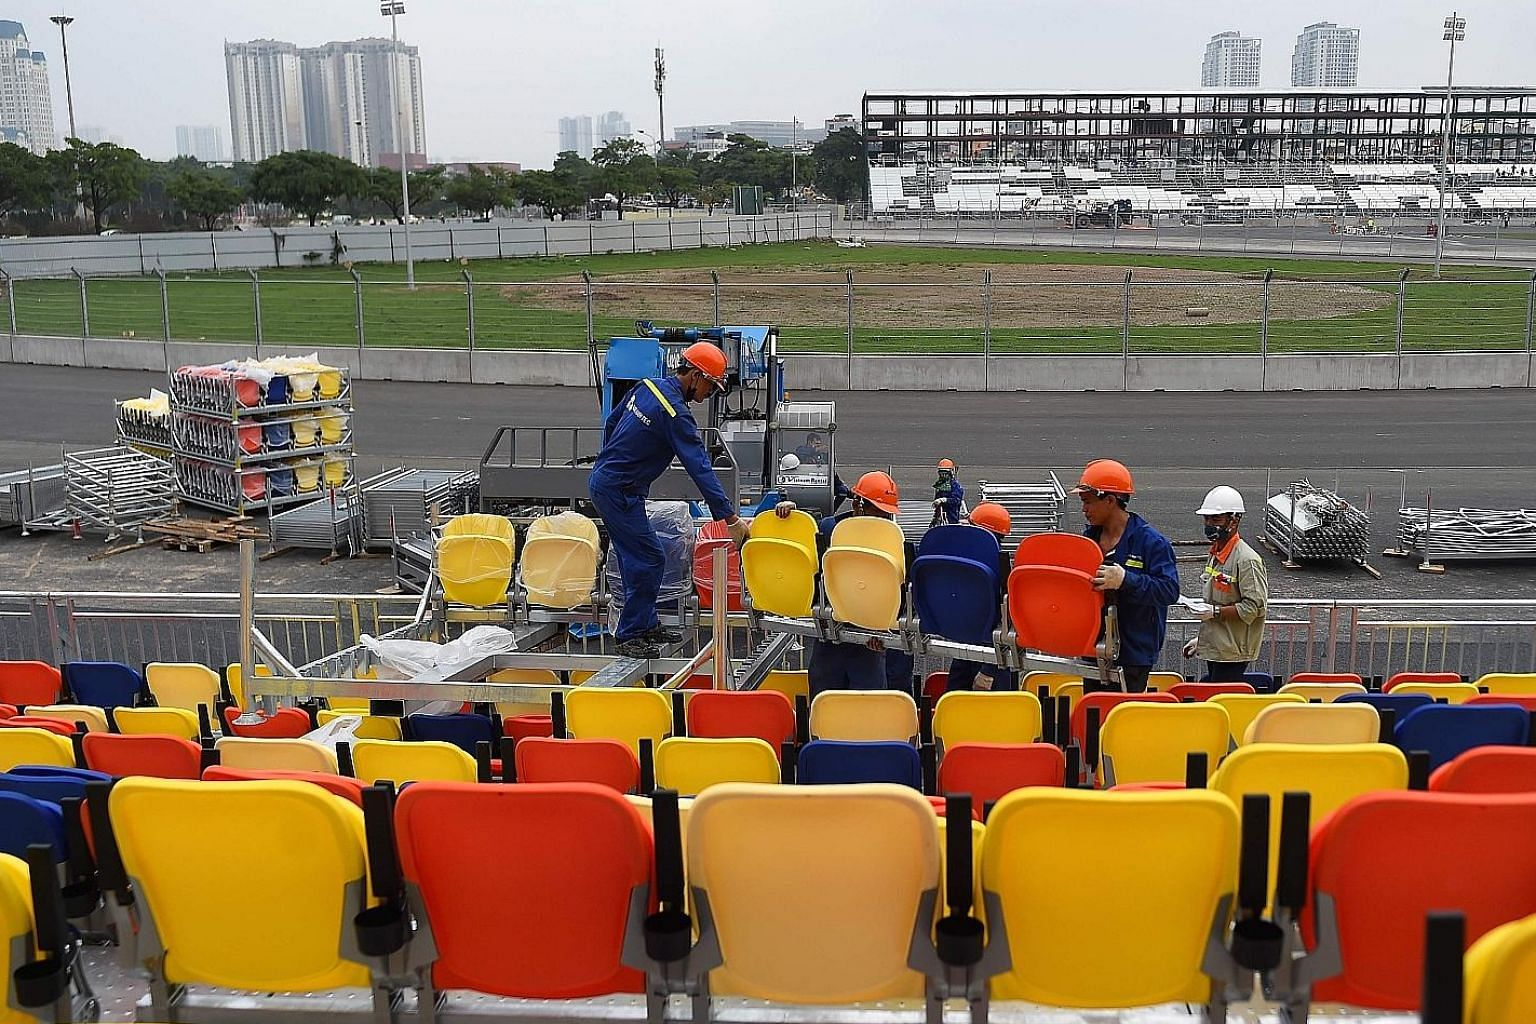 Workers fixing the chairs for the grandstand at the Formula One racetrack in Hanoi. The inaugural Vietnam Grand Prix is set for April 5.